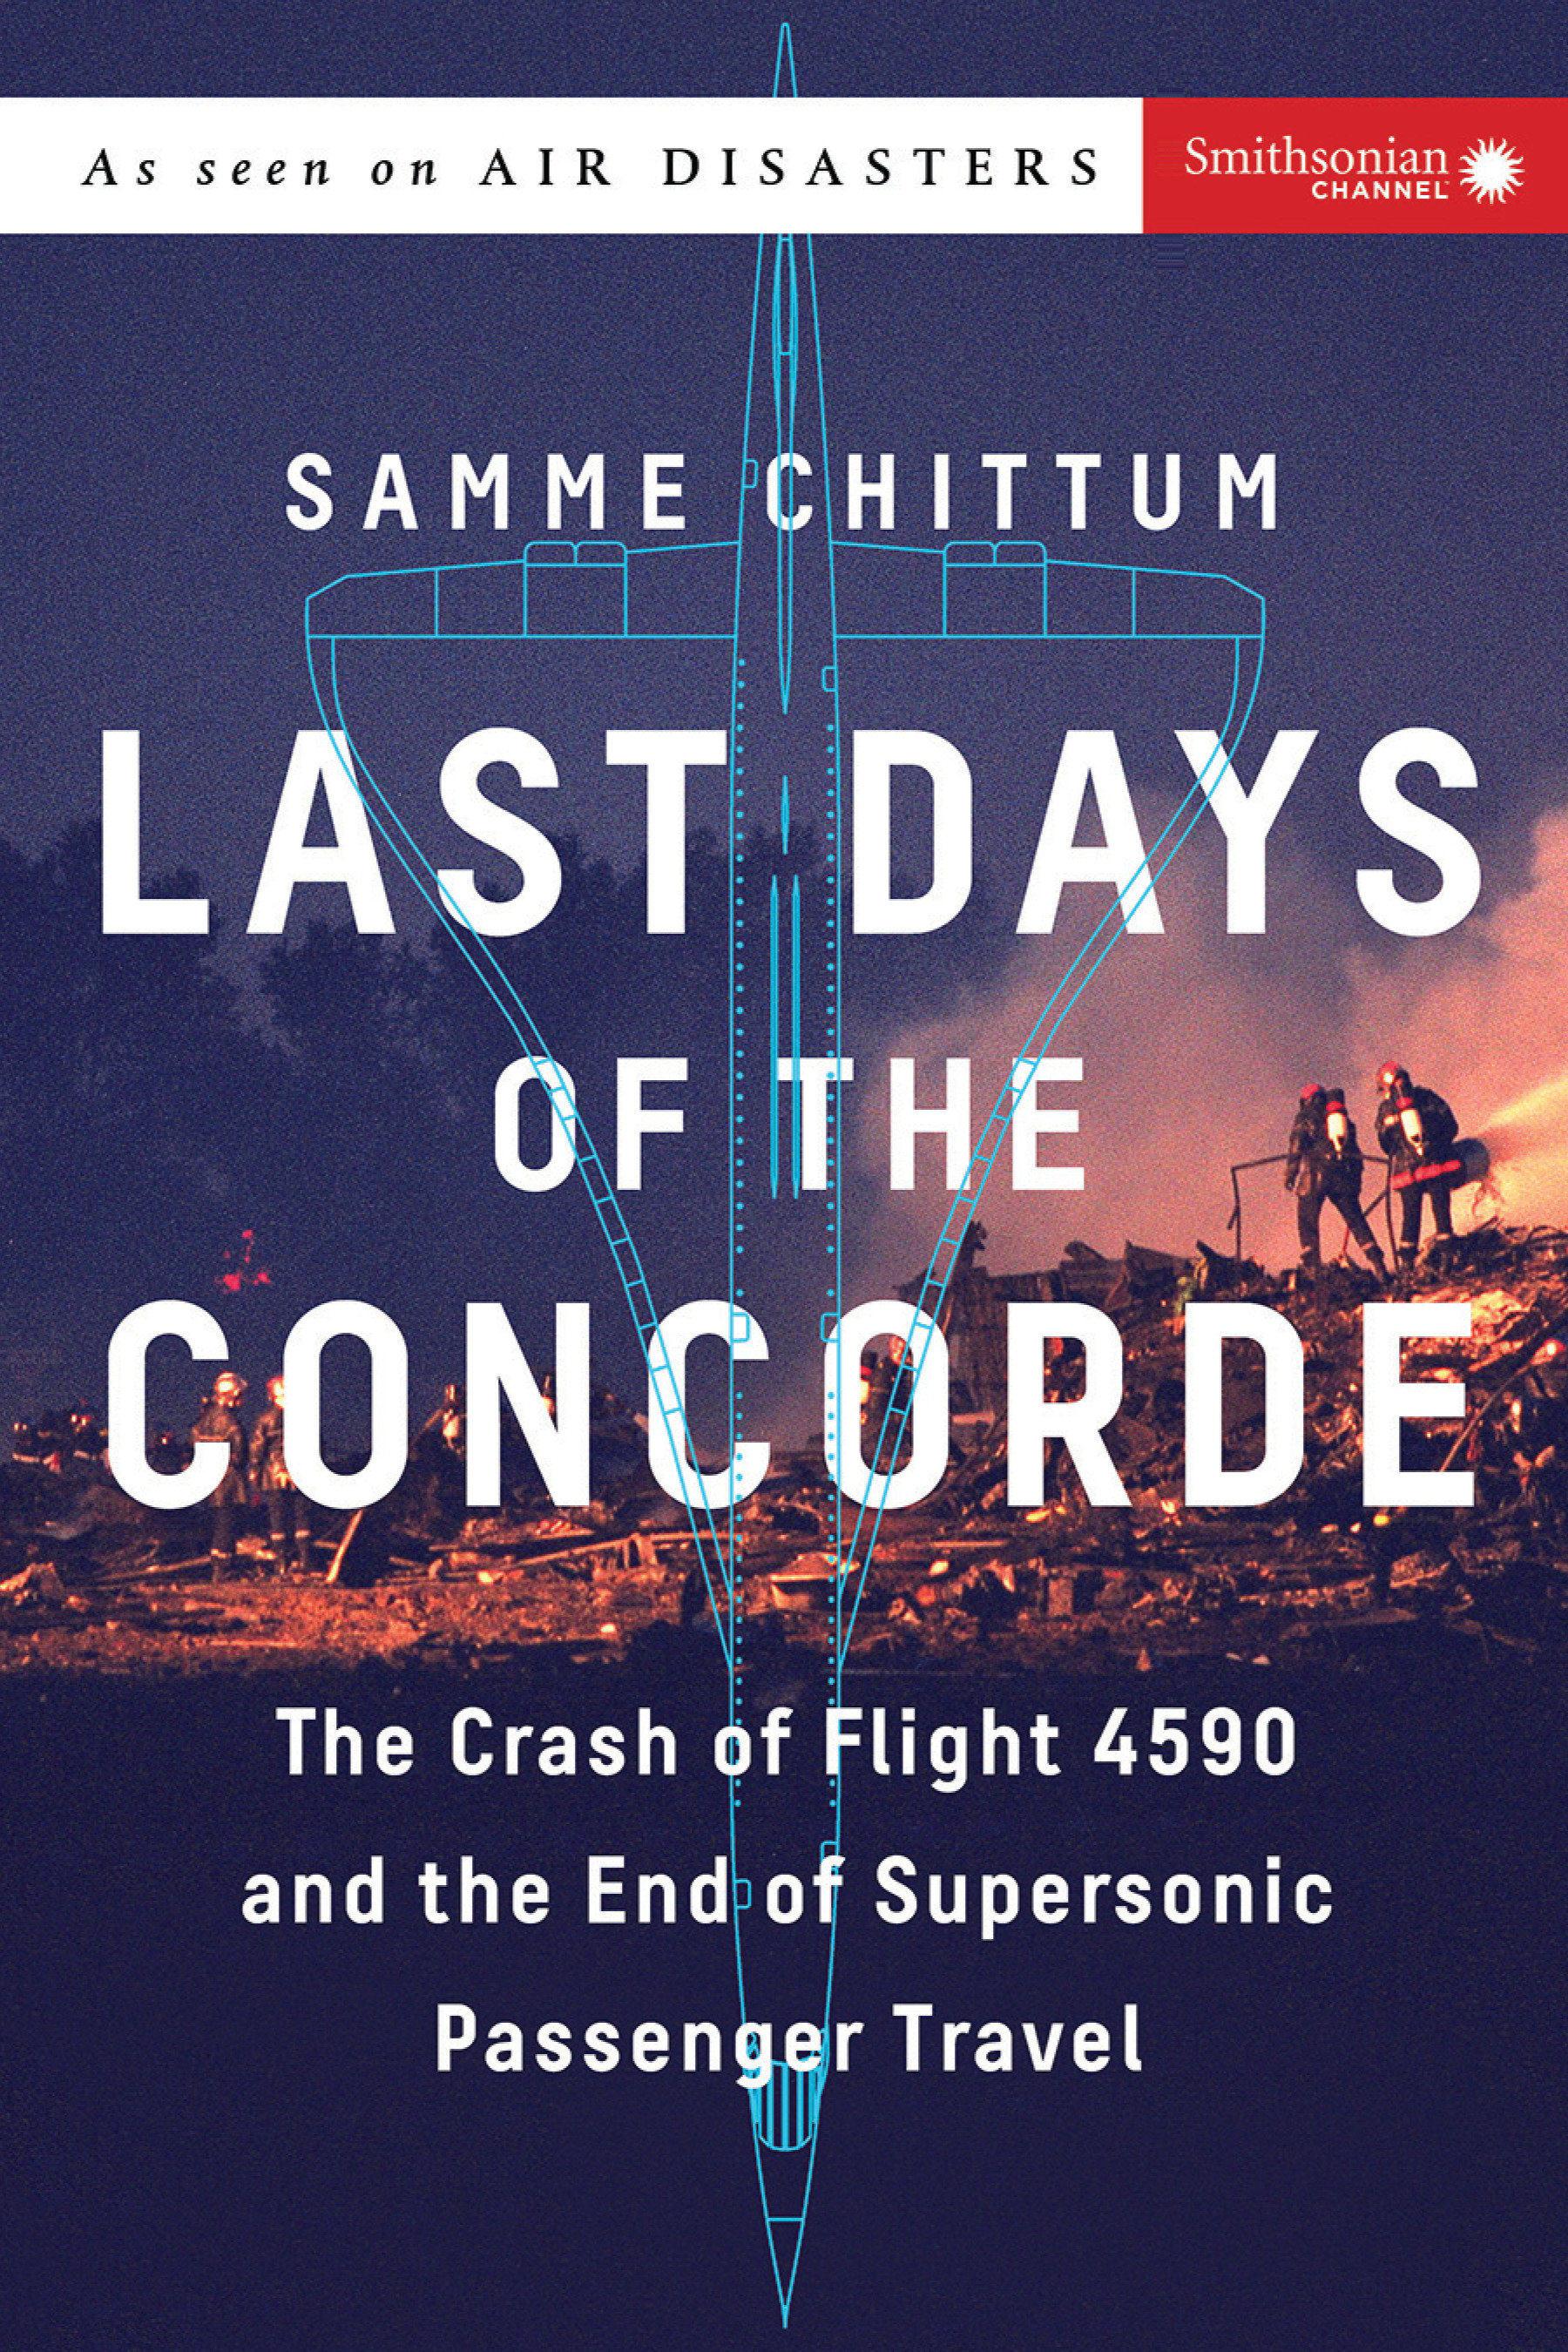 Last days of the Concorde the crash of Flight 4590 and the end of supersonic passenger travel cover image